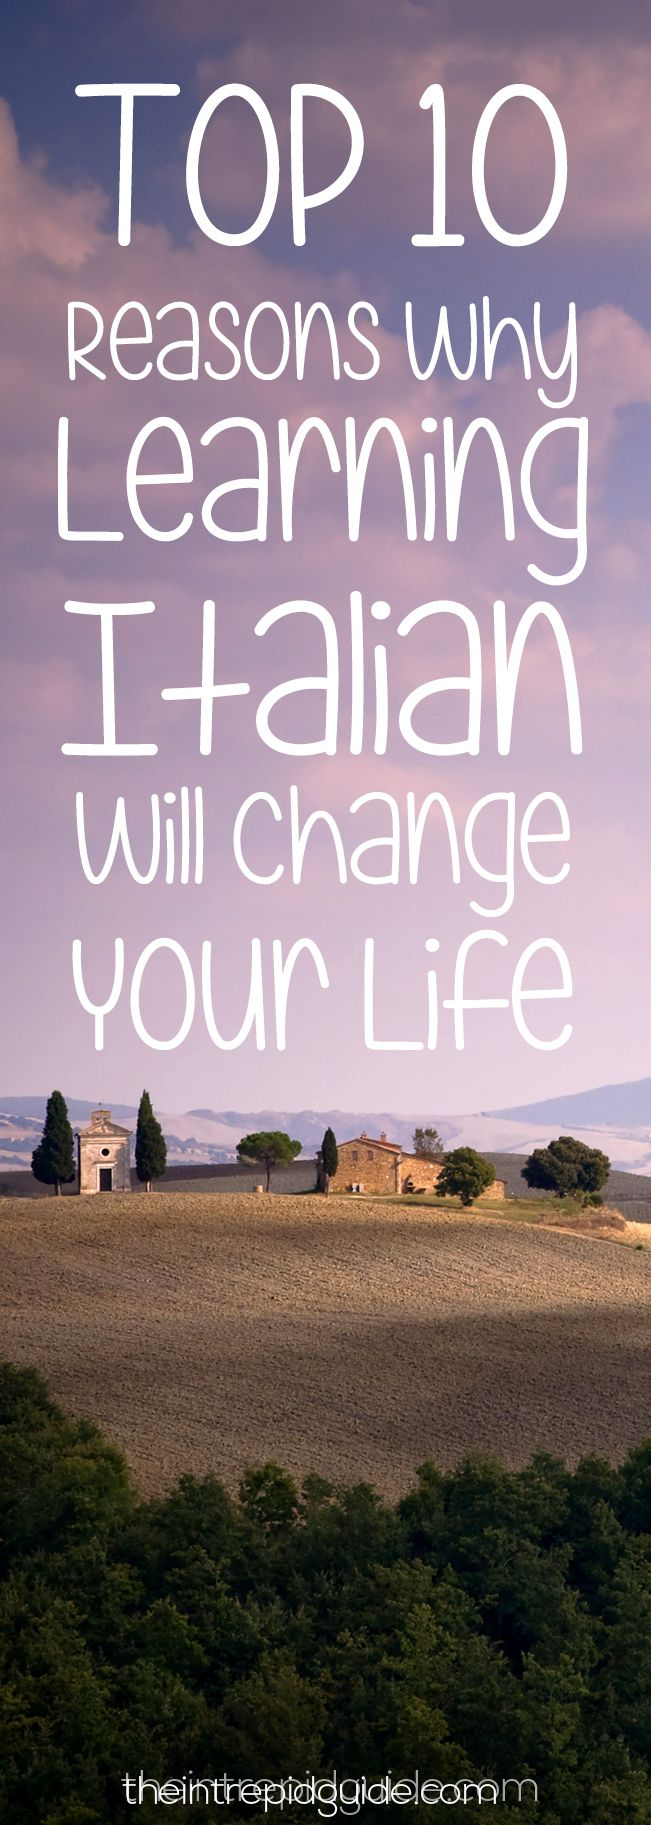 Top 10 Reasons Why Learning Italian Will Change Your Life                                                                                                                                                                                 More